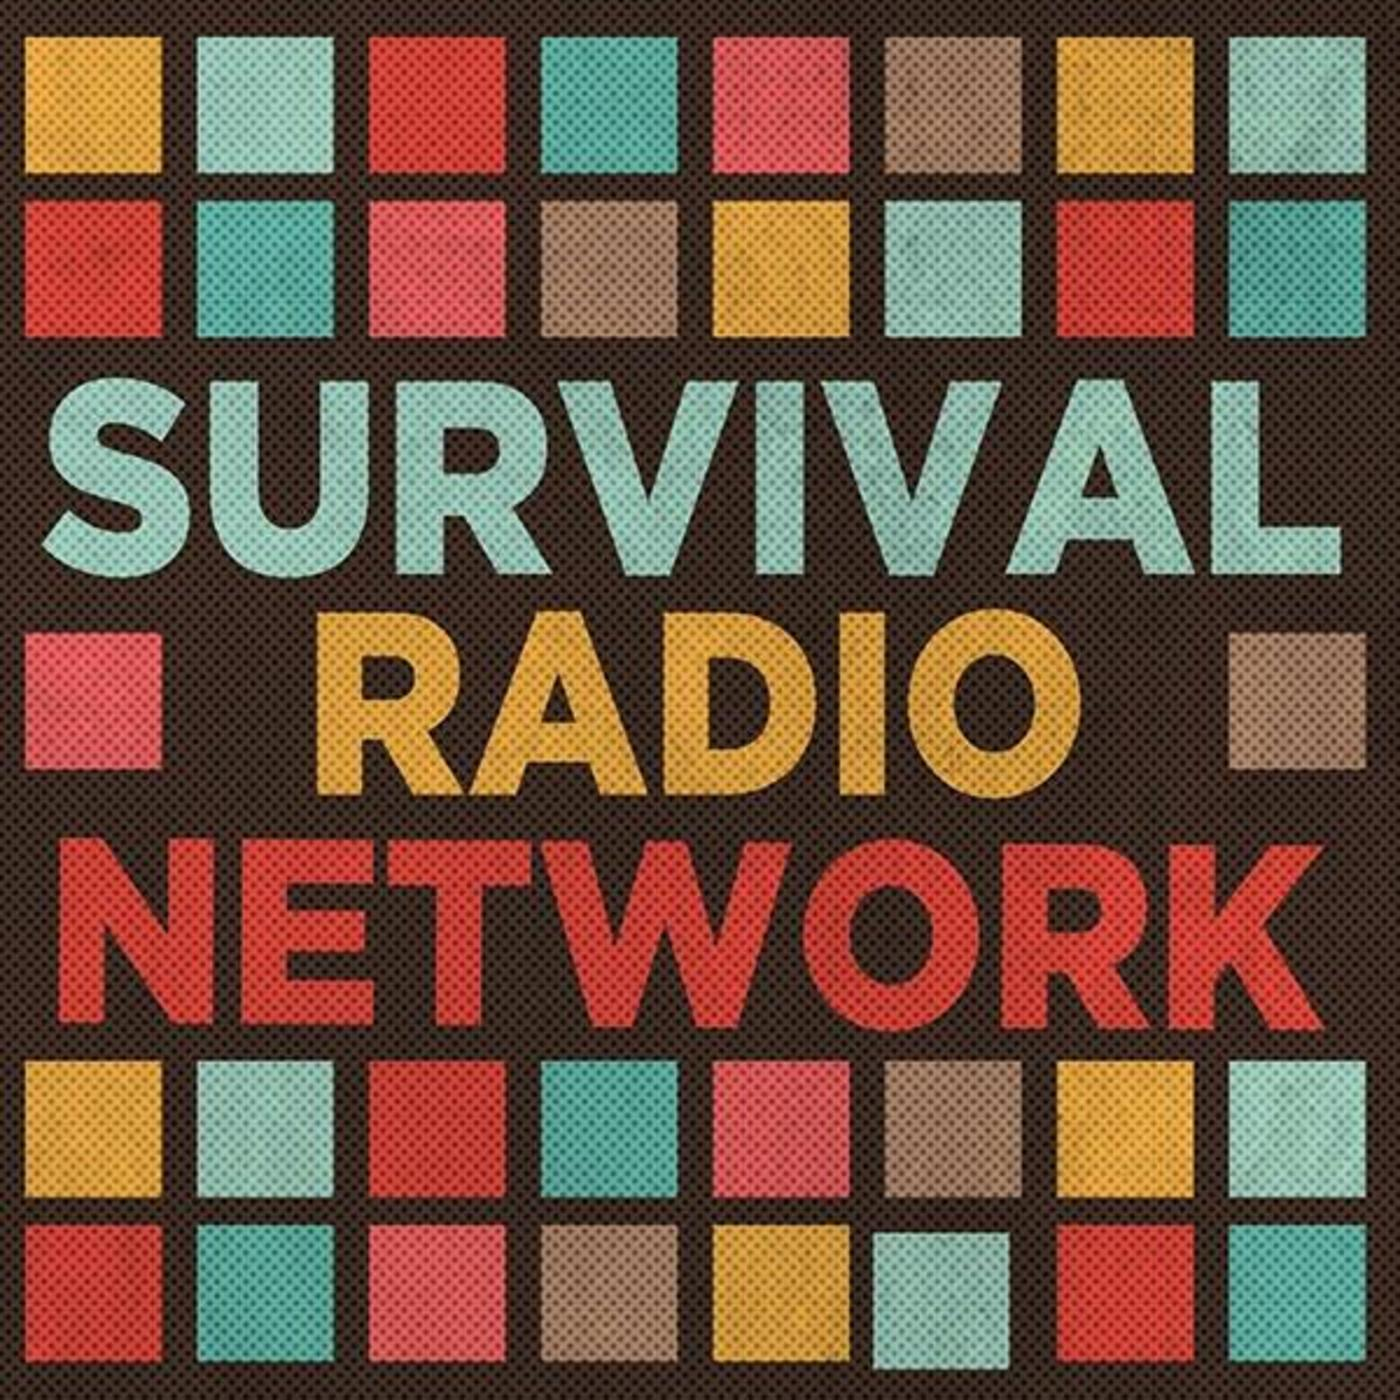 Survival Radio Network